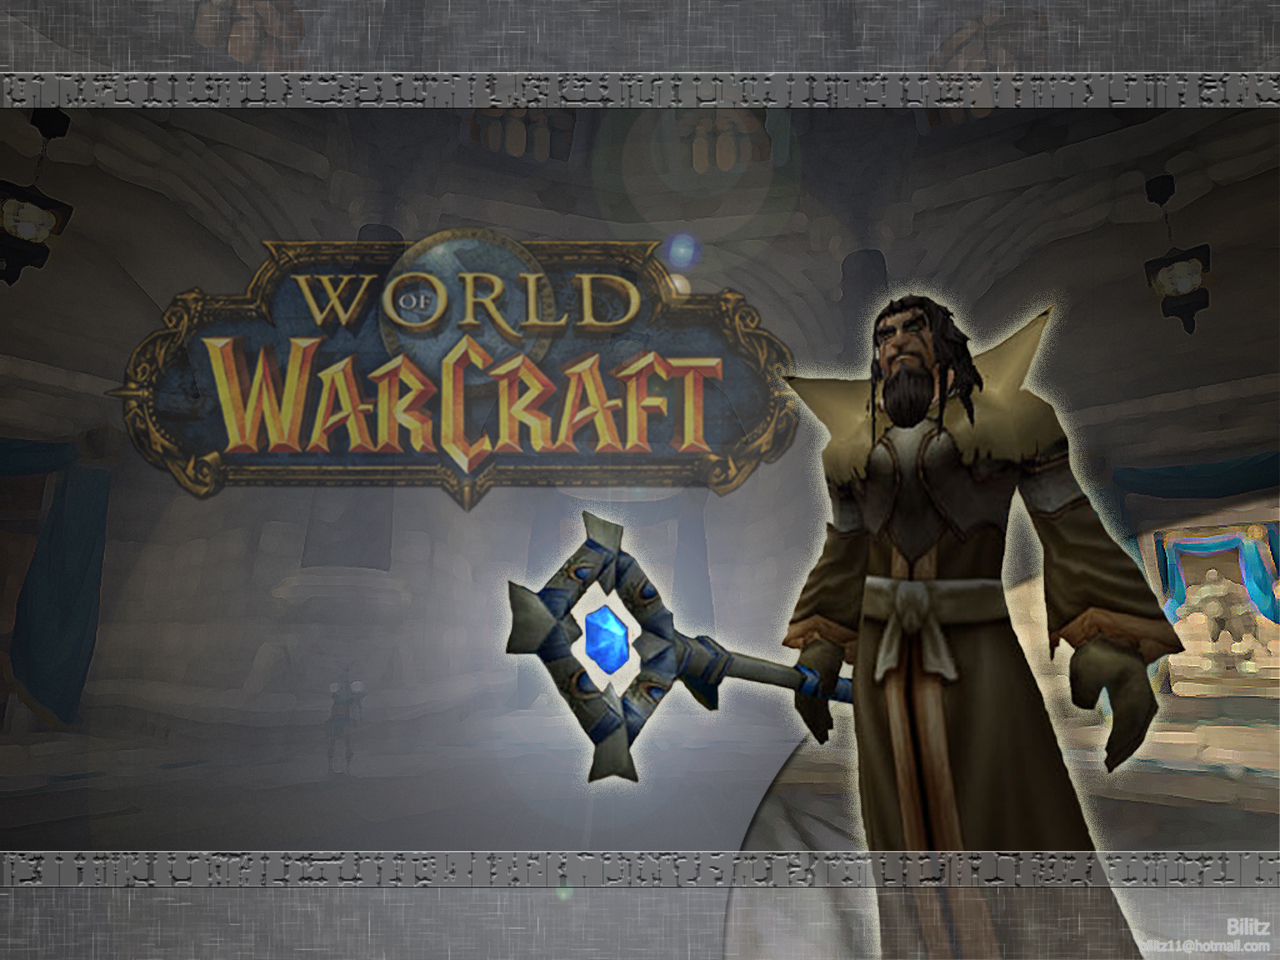 Worlf of warcraft hentina porncraft pics